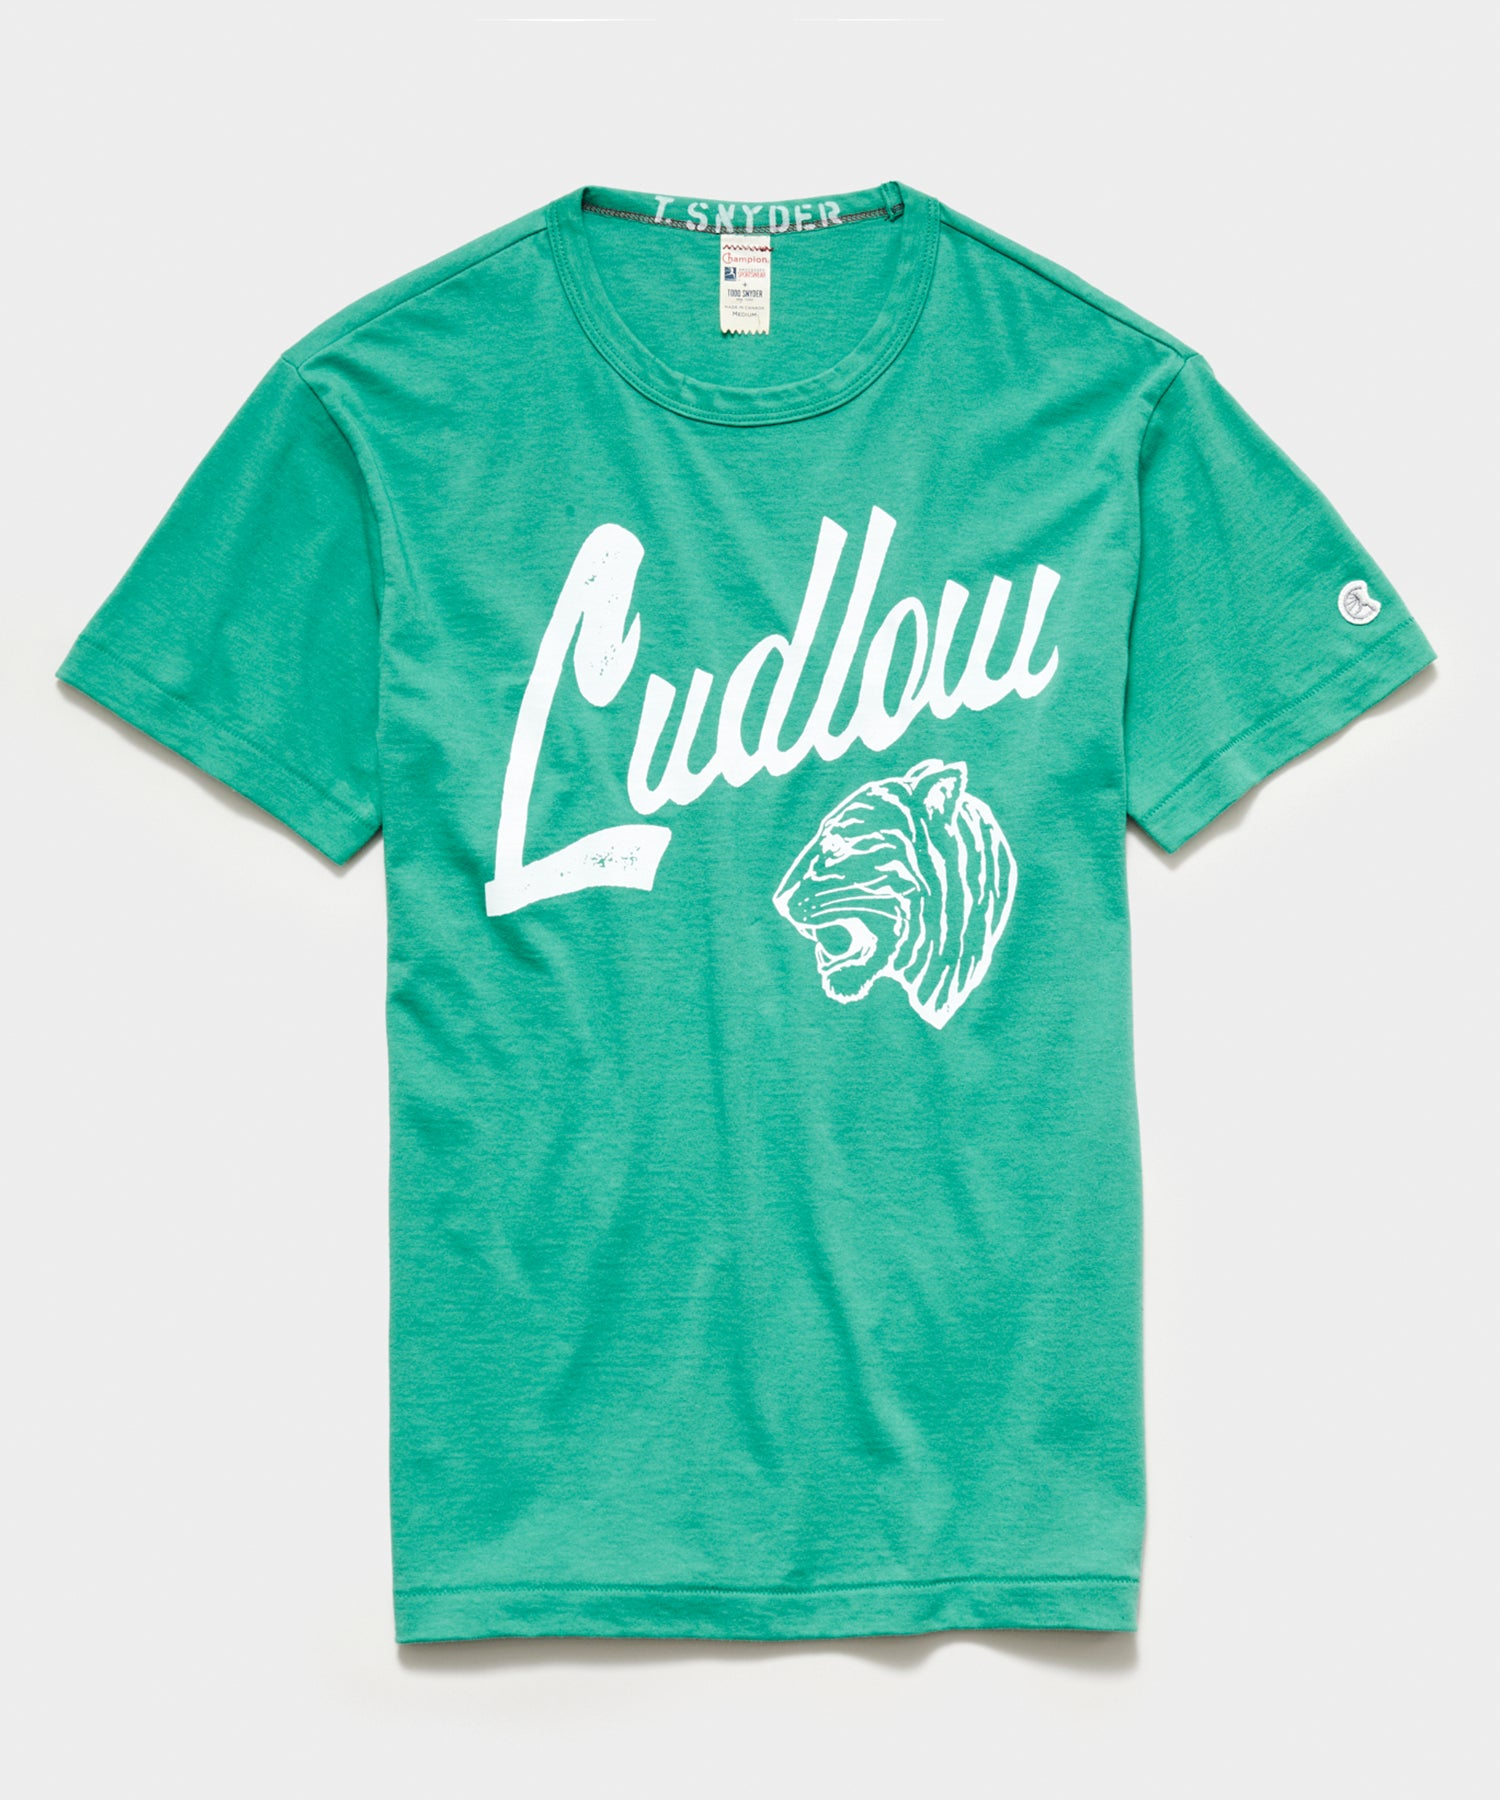 Champion Ludlow Tee in Greenhouse